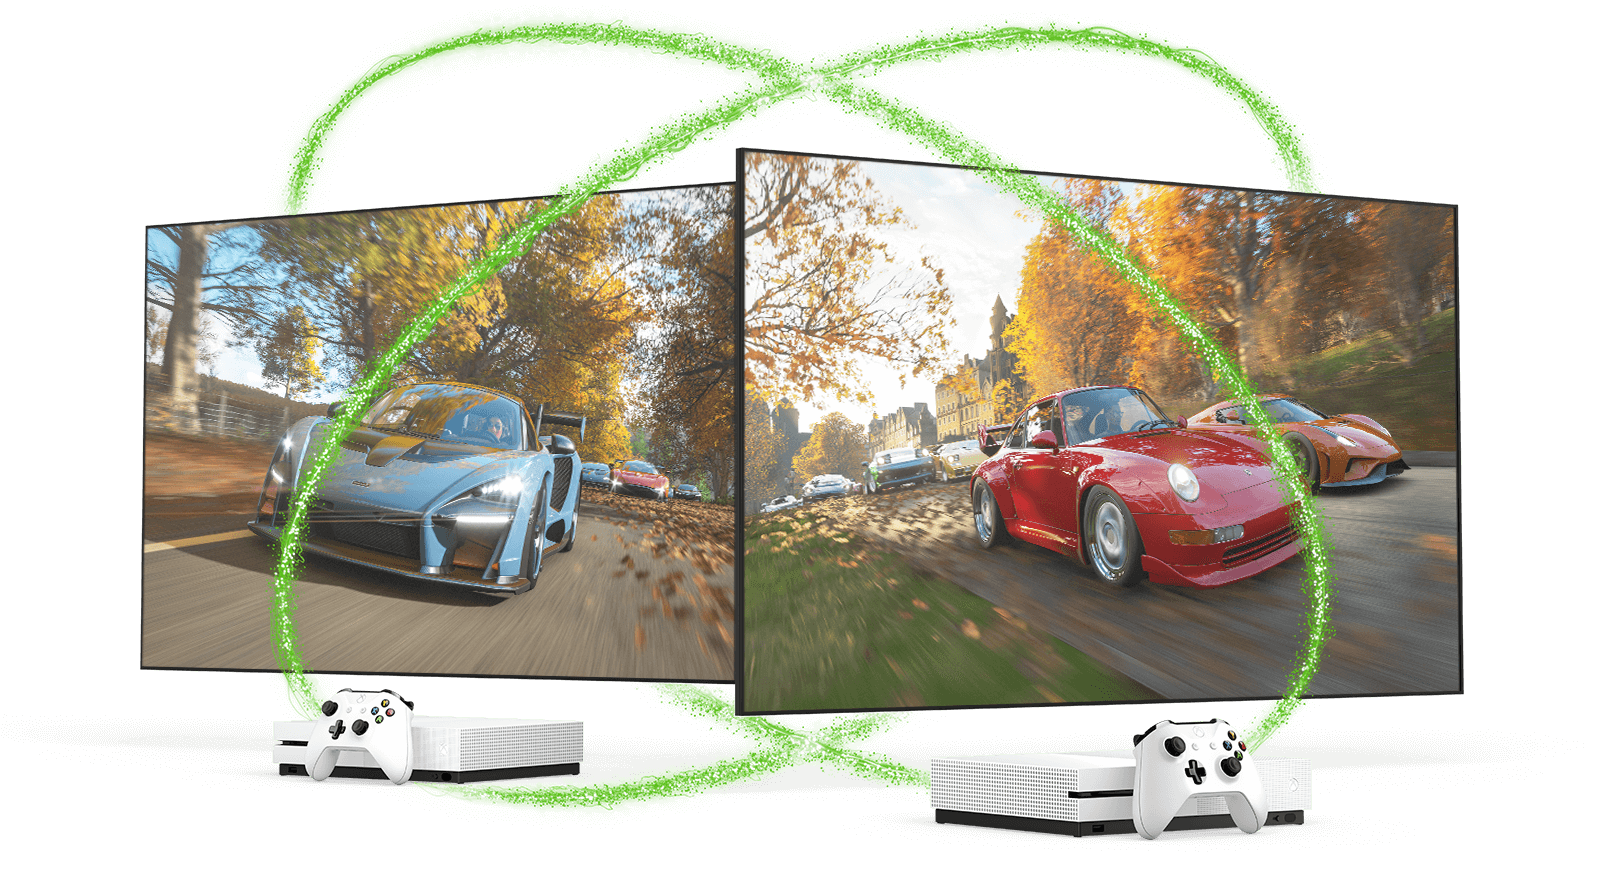 Two television screens displaying Forza Horizon 4, in front of two Xbox One S consoles and controllers, encircled by two intersecting neon-green beams of light.